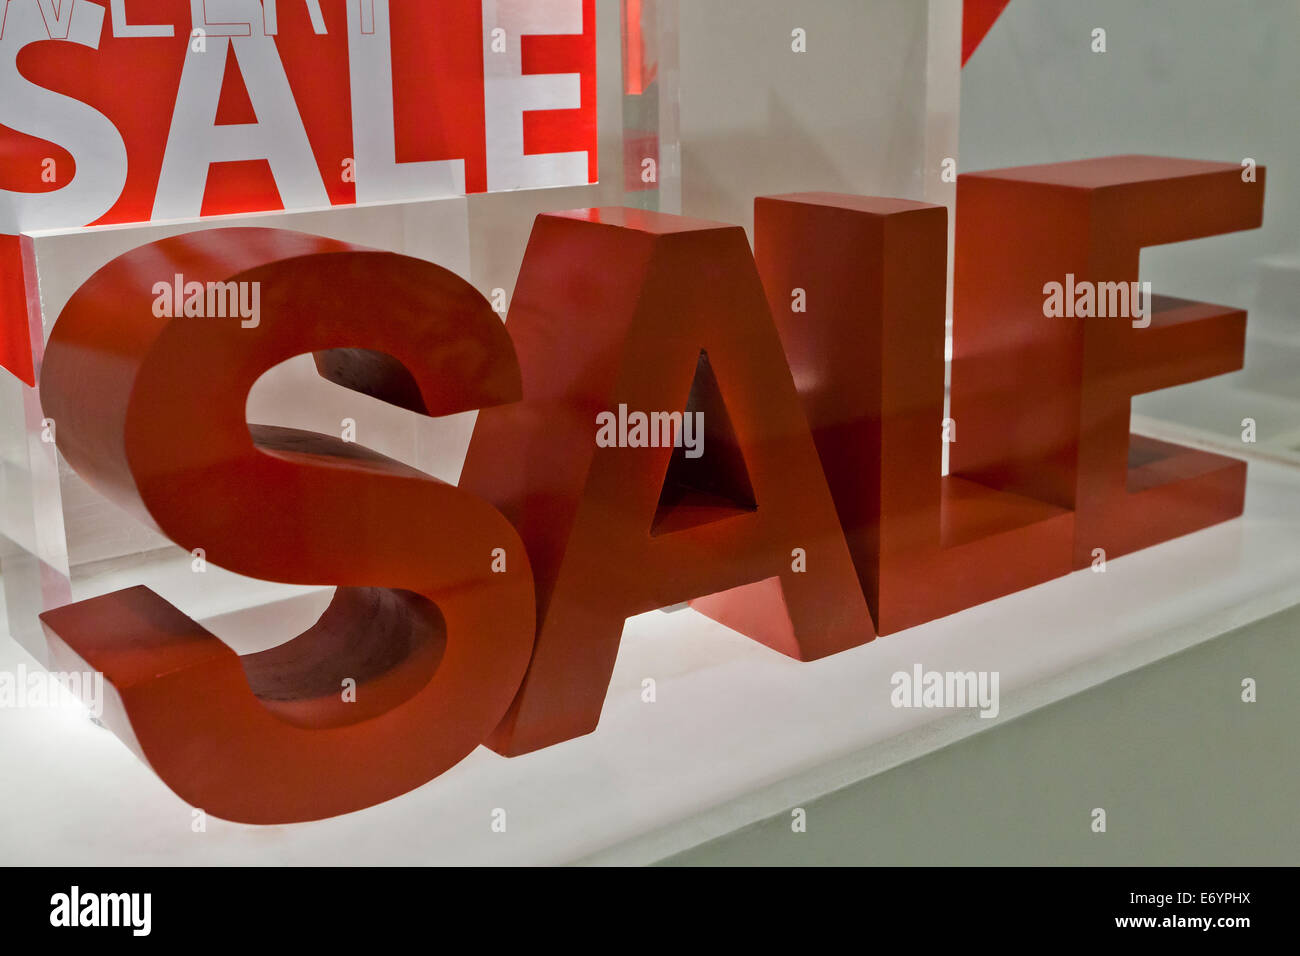 Sale sign - Stock Image